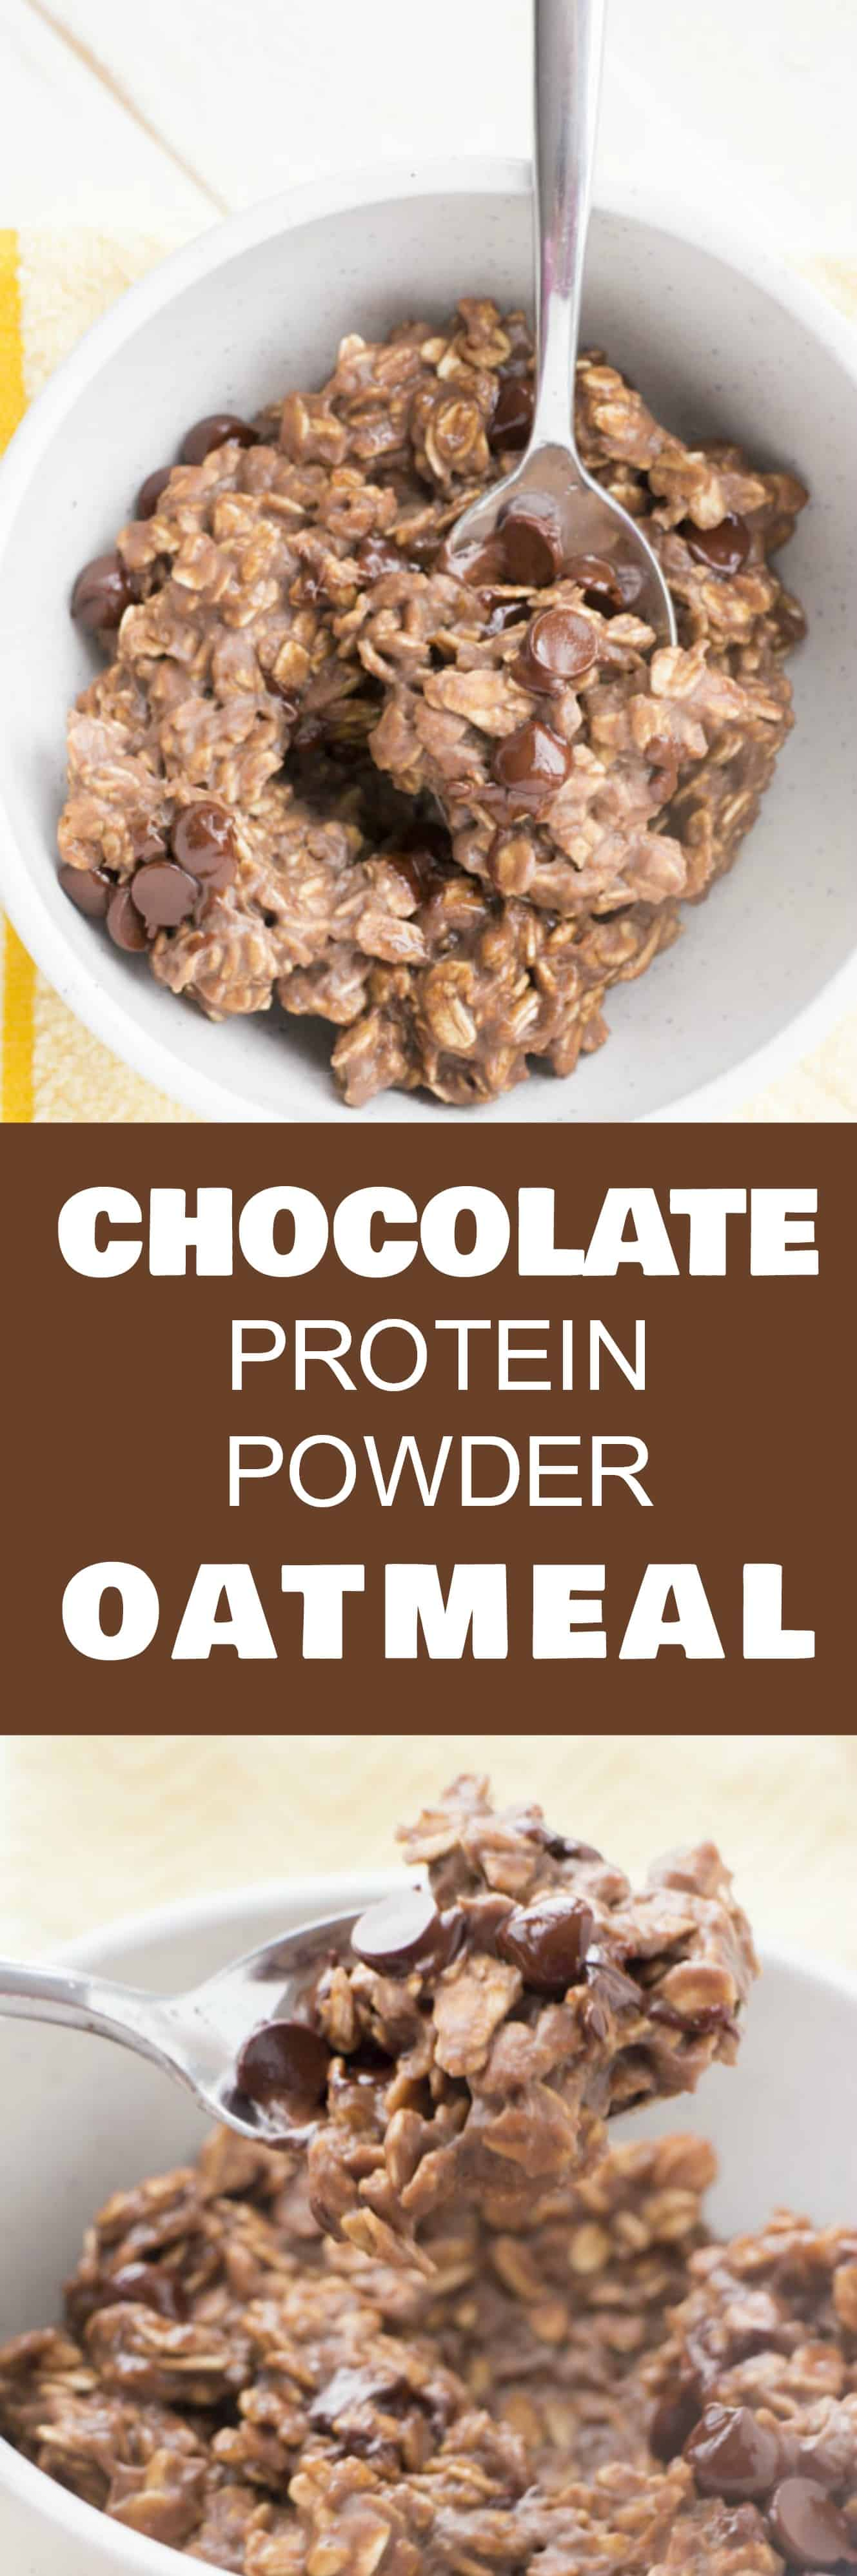 Chocolate Protein Powder Oatmeal - Healthy breakfast recipe!